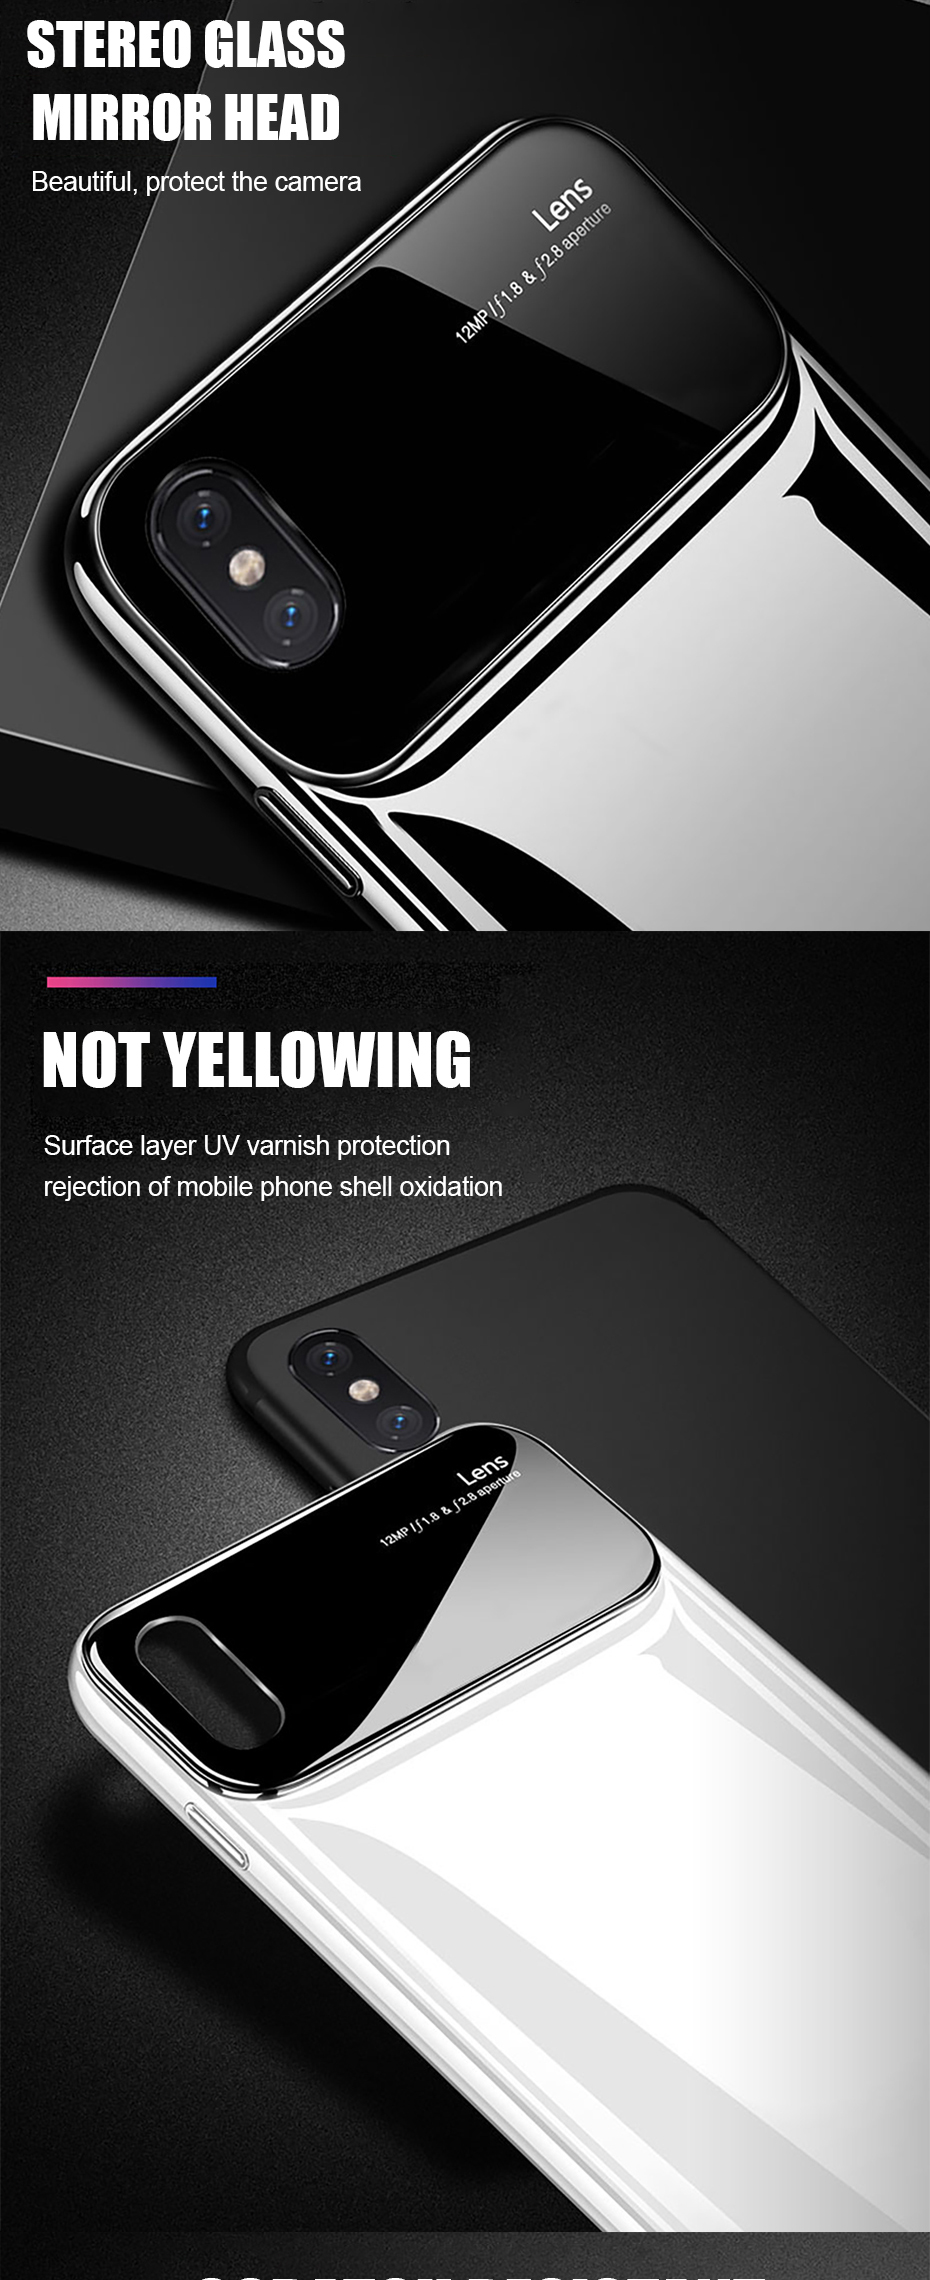 Bakeey 360º Rotation Ring Grip Kickstand Tempered Glass Lens Protection PC Protective Case For iPhone X/XR/XS/XS Max